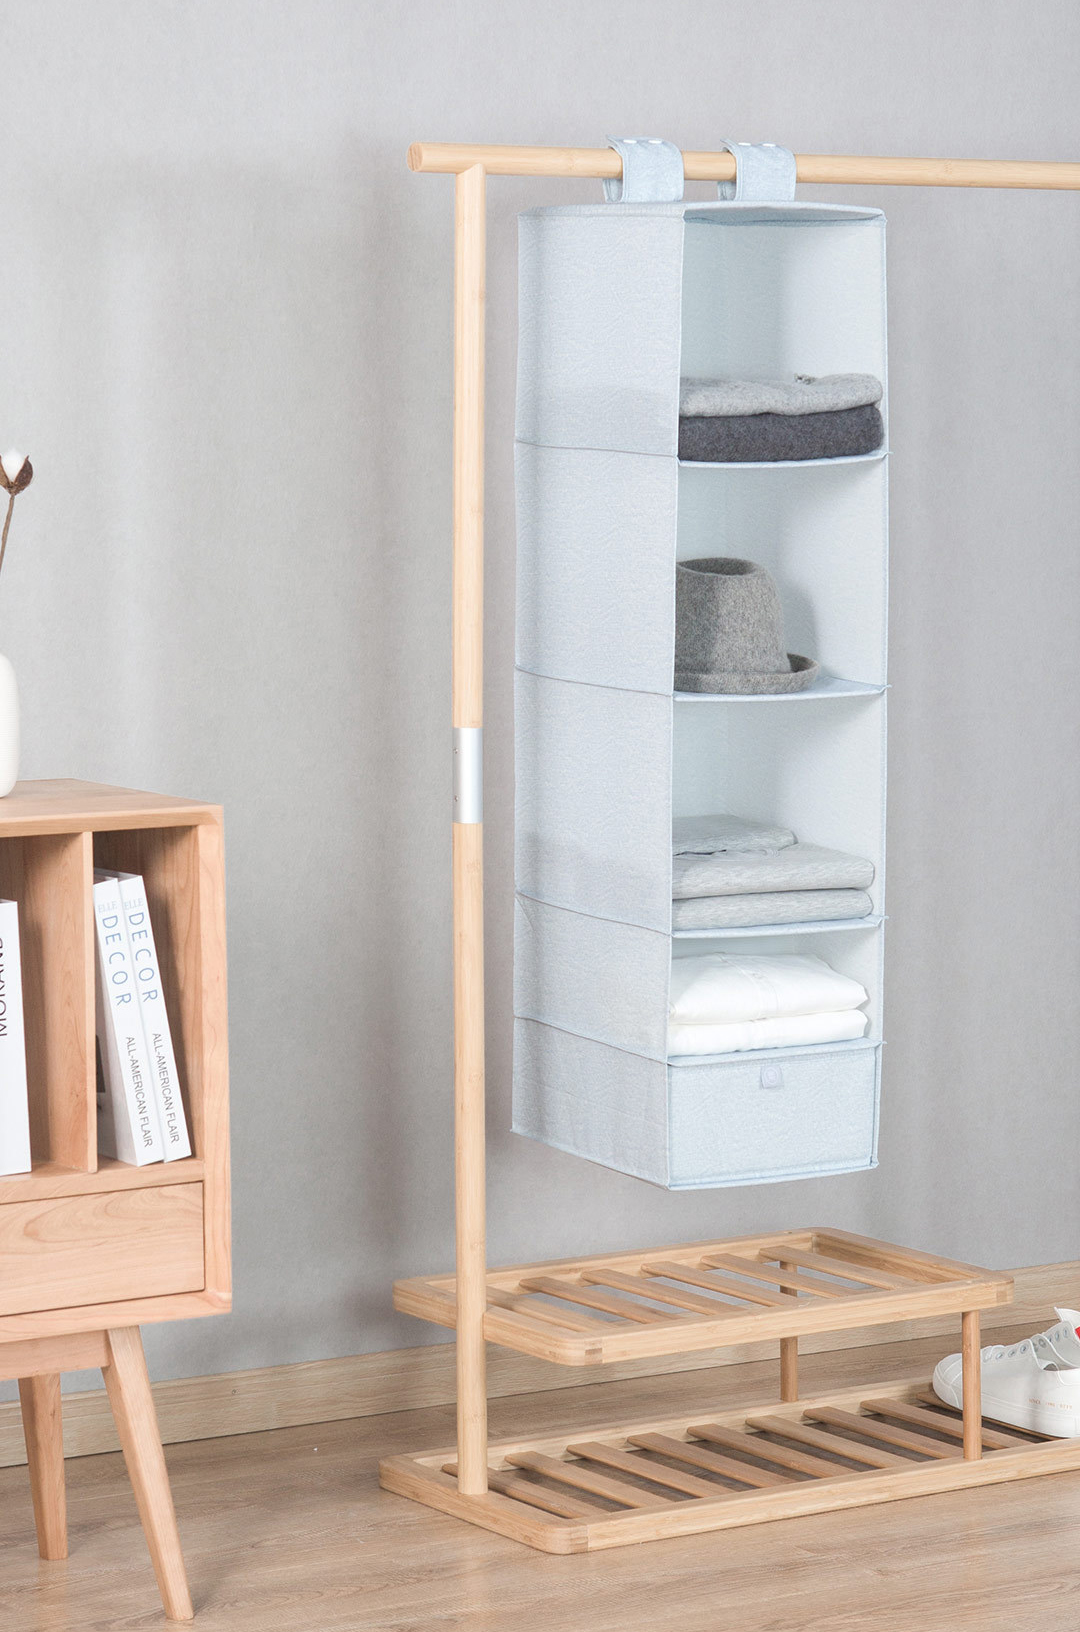 Nature Household 5 Compartment Hanging Fabric Storage Organizer Keeps Your Things Organised Multipurpose Design